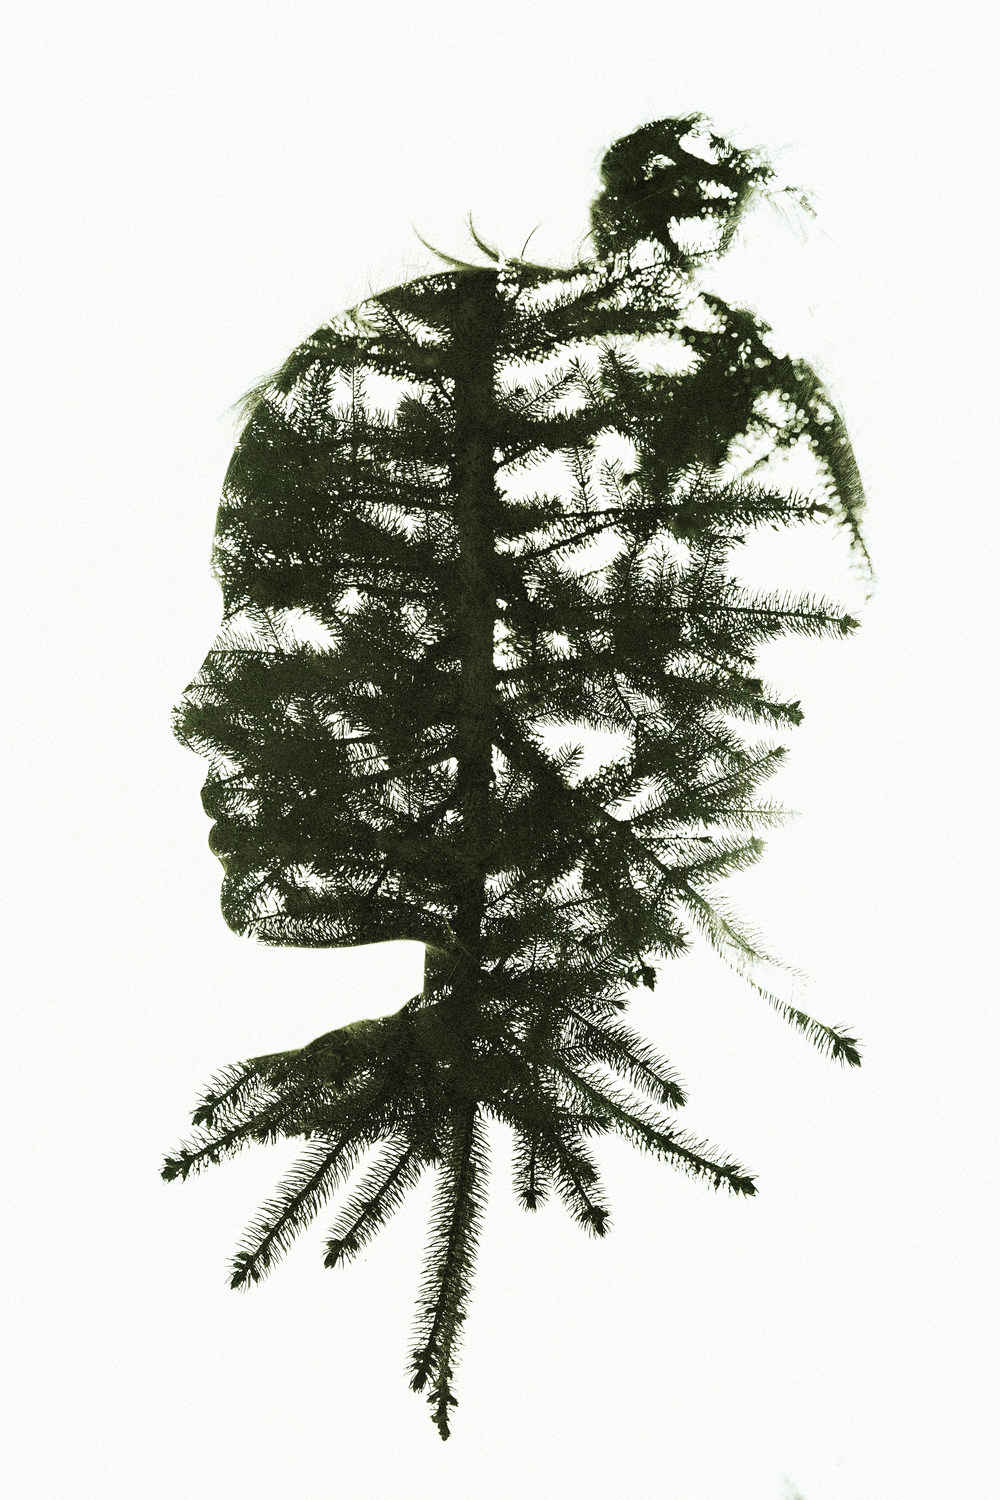 Hello-olivia-photography-long-island-family-children-childrens-photographer-double-exposure-pine-tree-profile